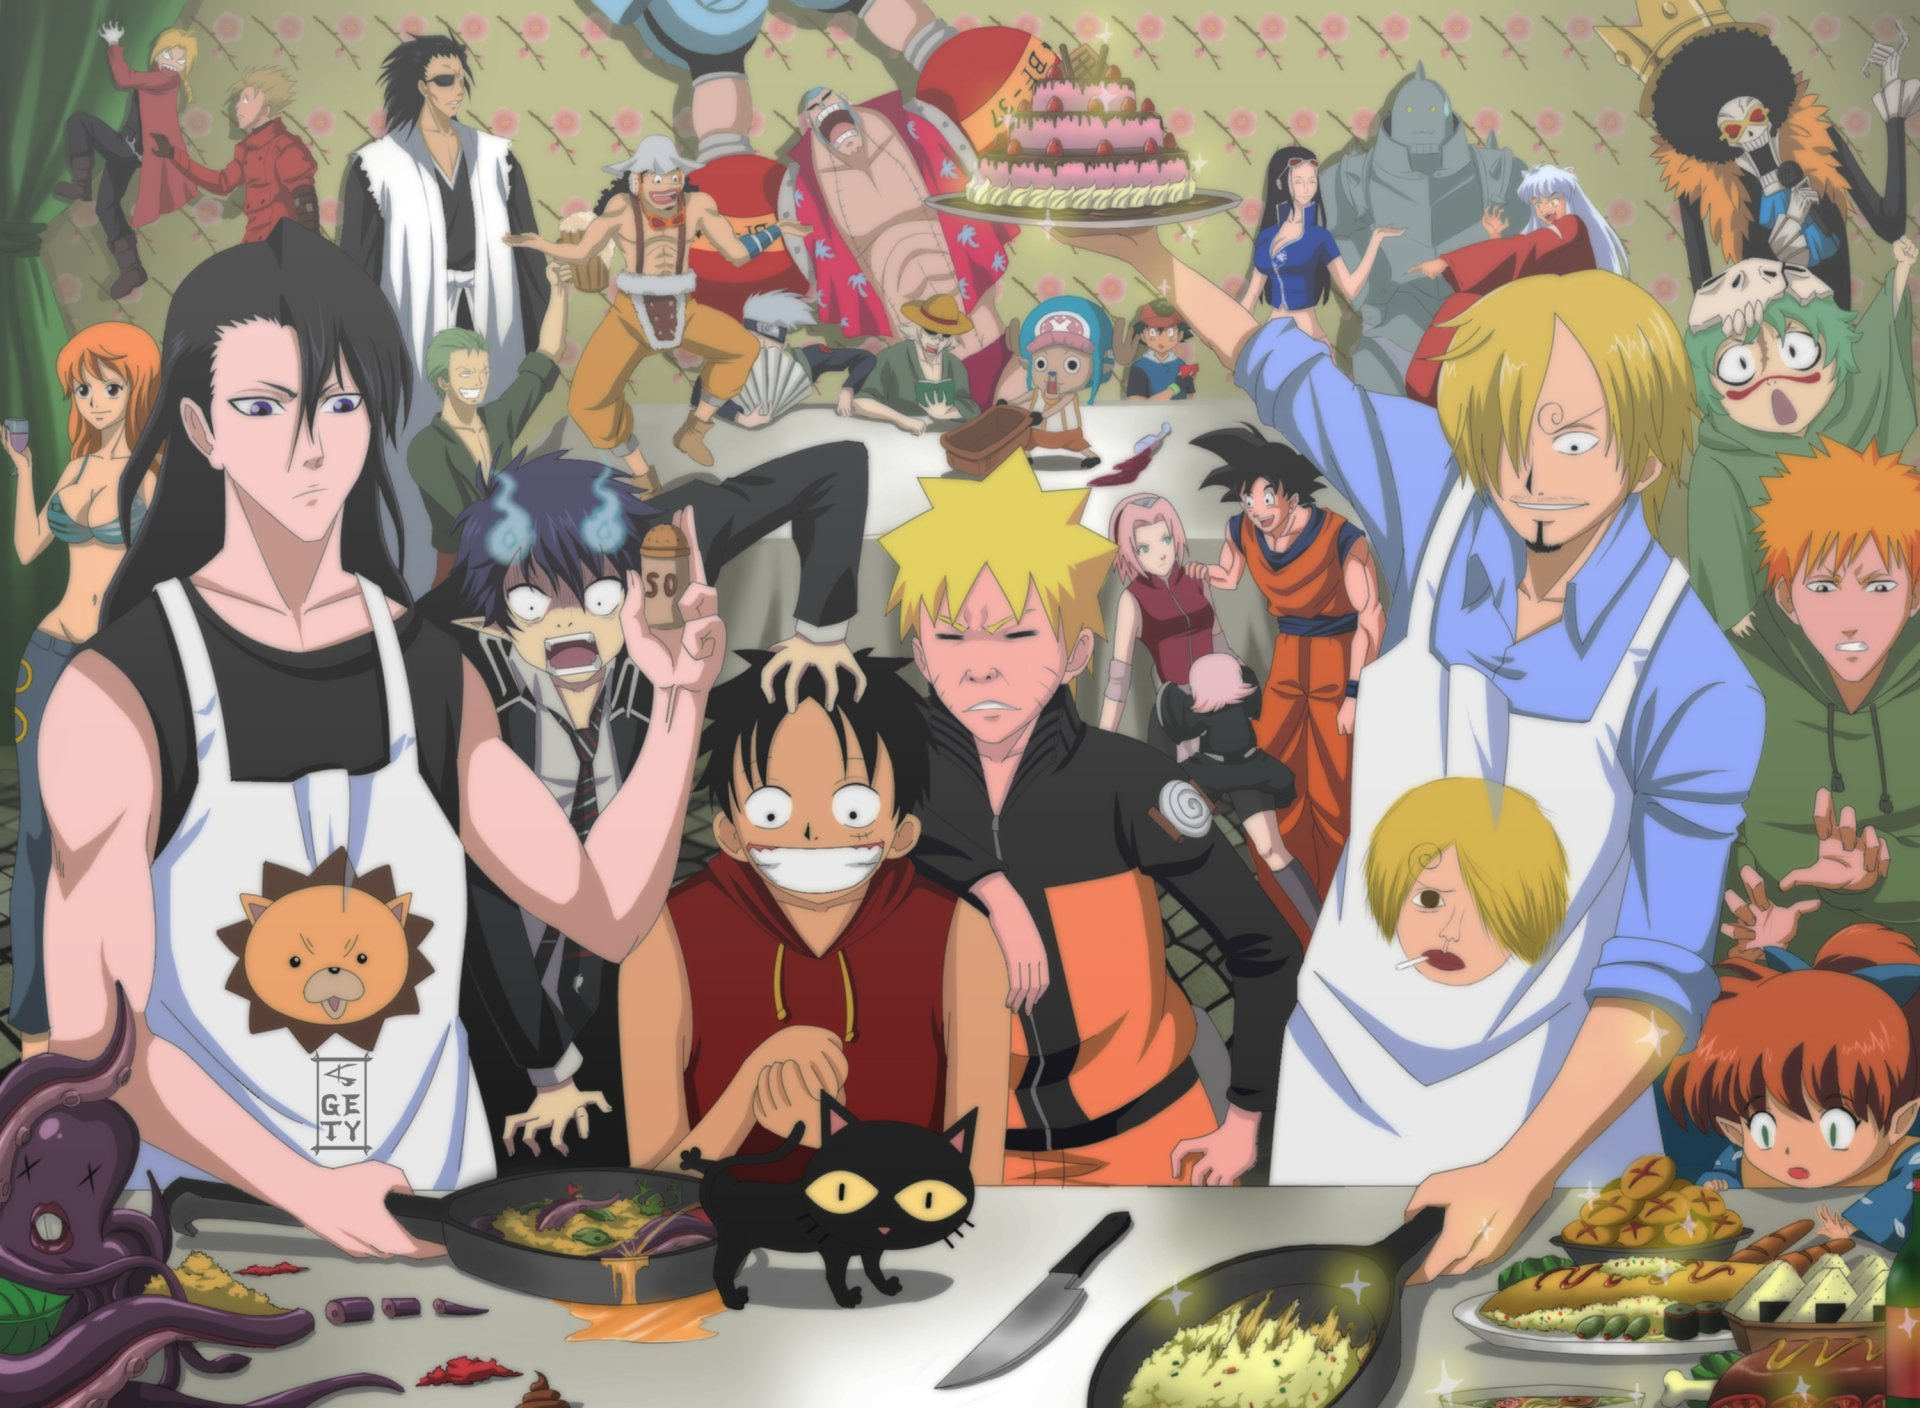 Anime - Crossover  One Piece Kenpachi Zaraki Usopp (One Piece) Kisuke Urahara Goku Zoro Roronoa Sanji (One Piece) Rin Okumura Ichigo Kurosaki Byakuya Kuchiki Kakashi Hatake Trigun Nico Robin Monkey D. Luffy Tony Tony Chopper Nami (One Piece) Sakura Haruno Franky (One Piece) Edward Elric Brook (One Piece) Alphonse Elric Dragon Ball Z Pokémon Dragon Ball Naruto Bleach Vash the Stampede InuYasha Fullmetal Alchemist Wallpaper